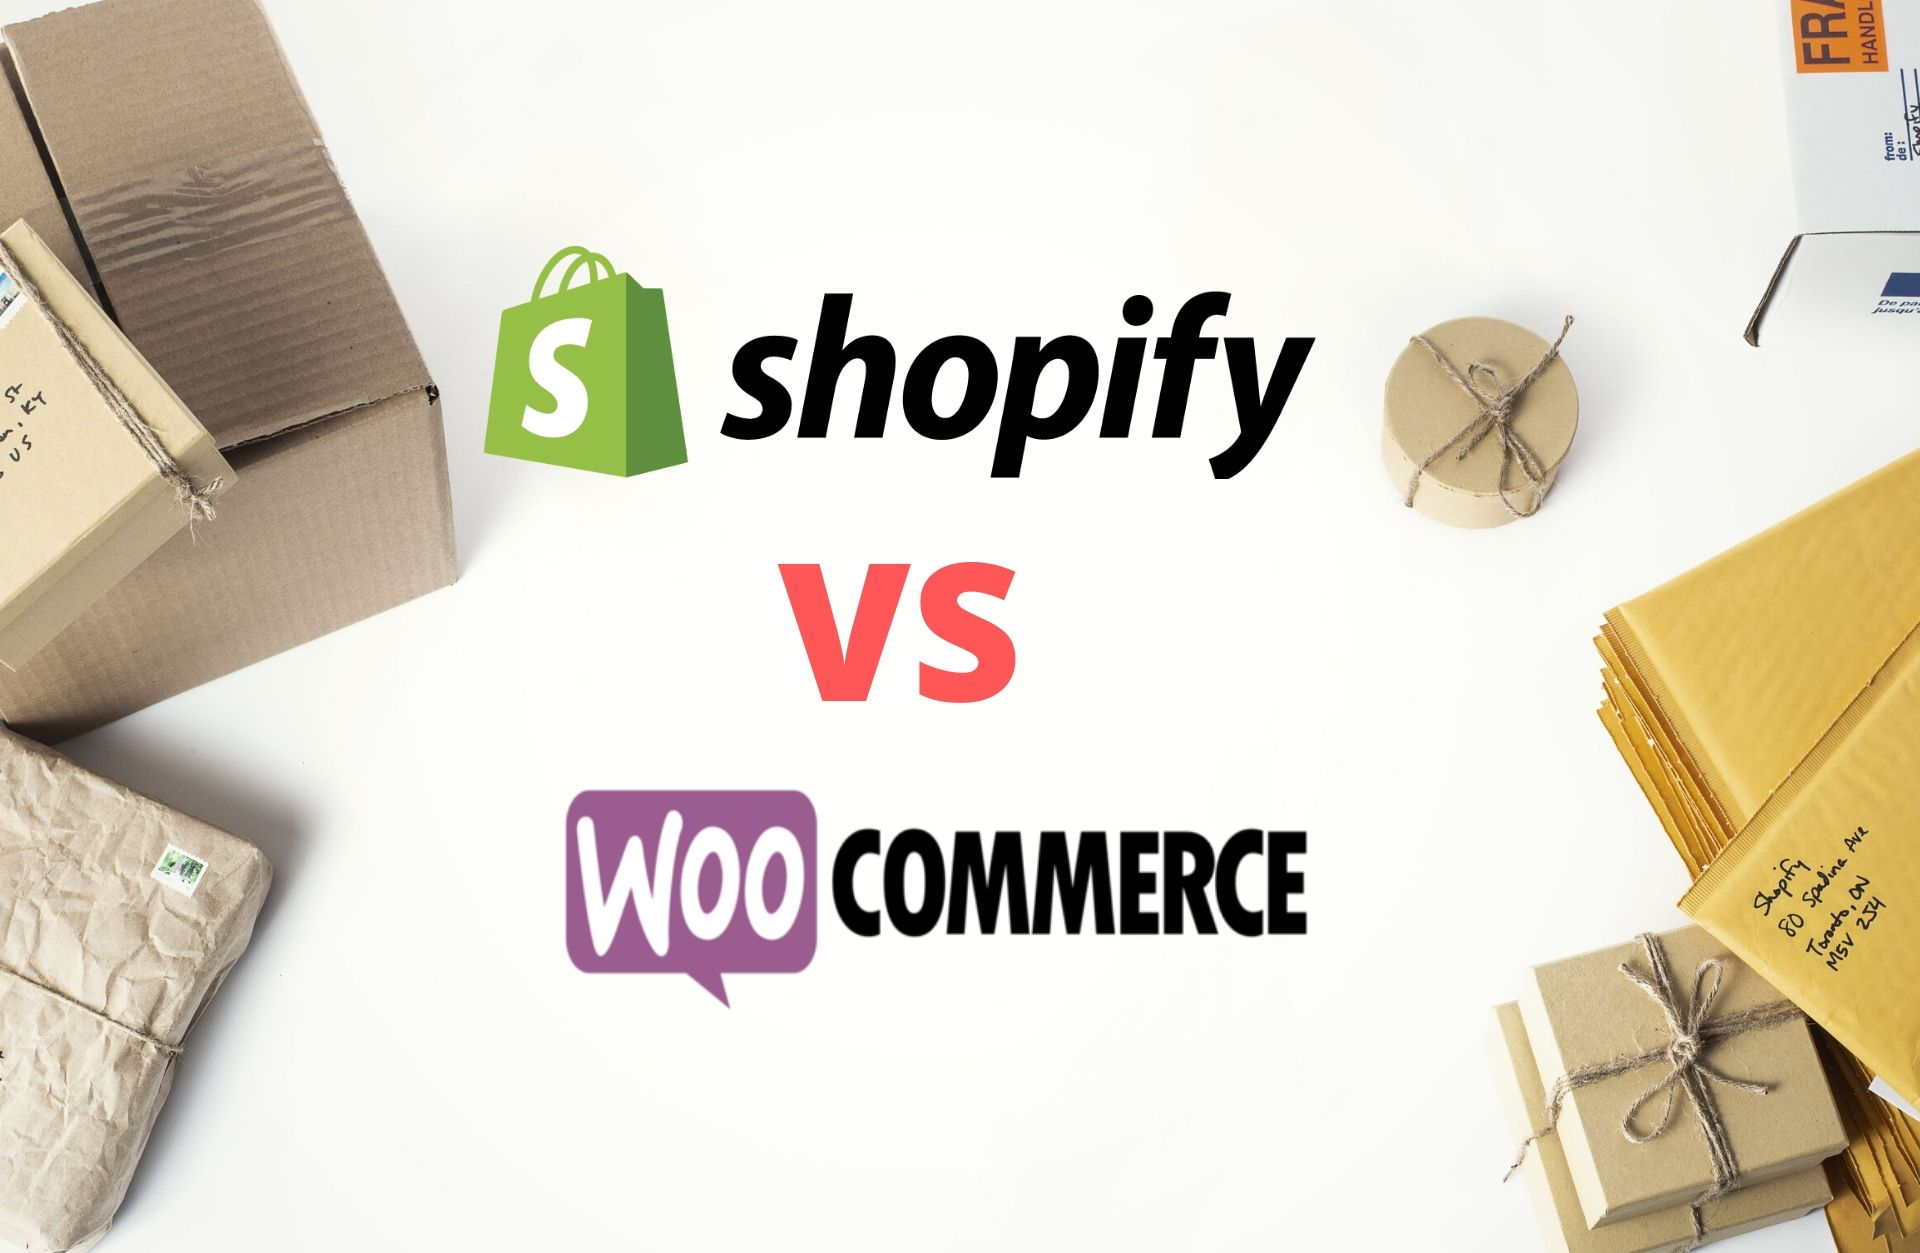 Shopify for Dropshipping VS Woocommerce for Dropshipping - eCom Record